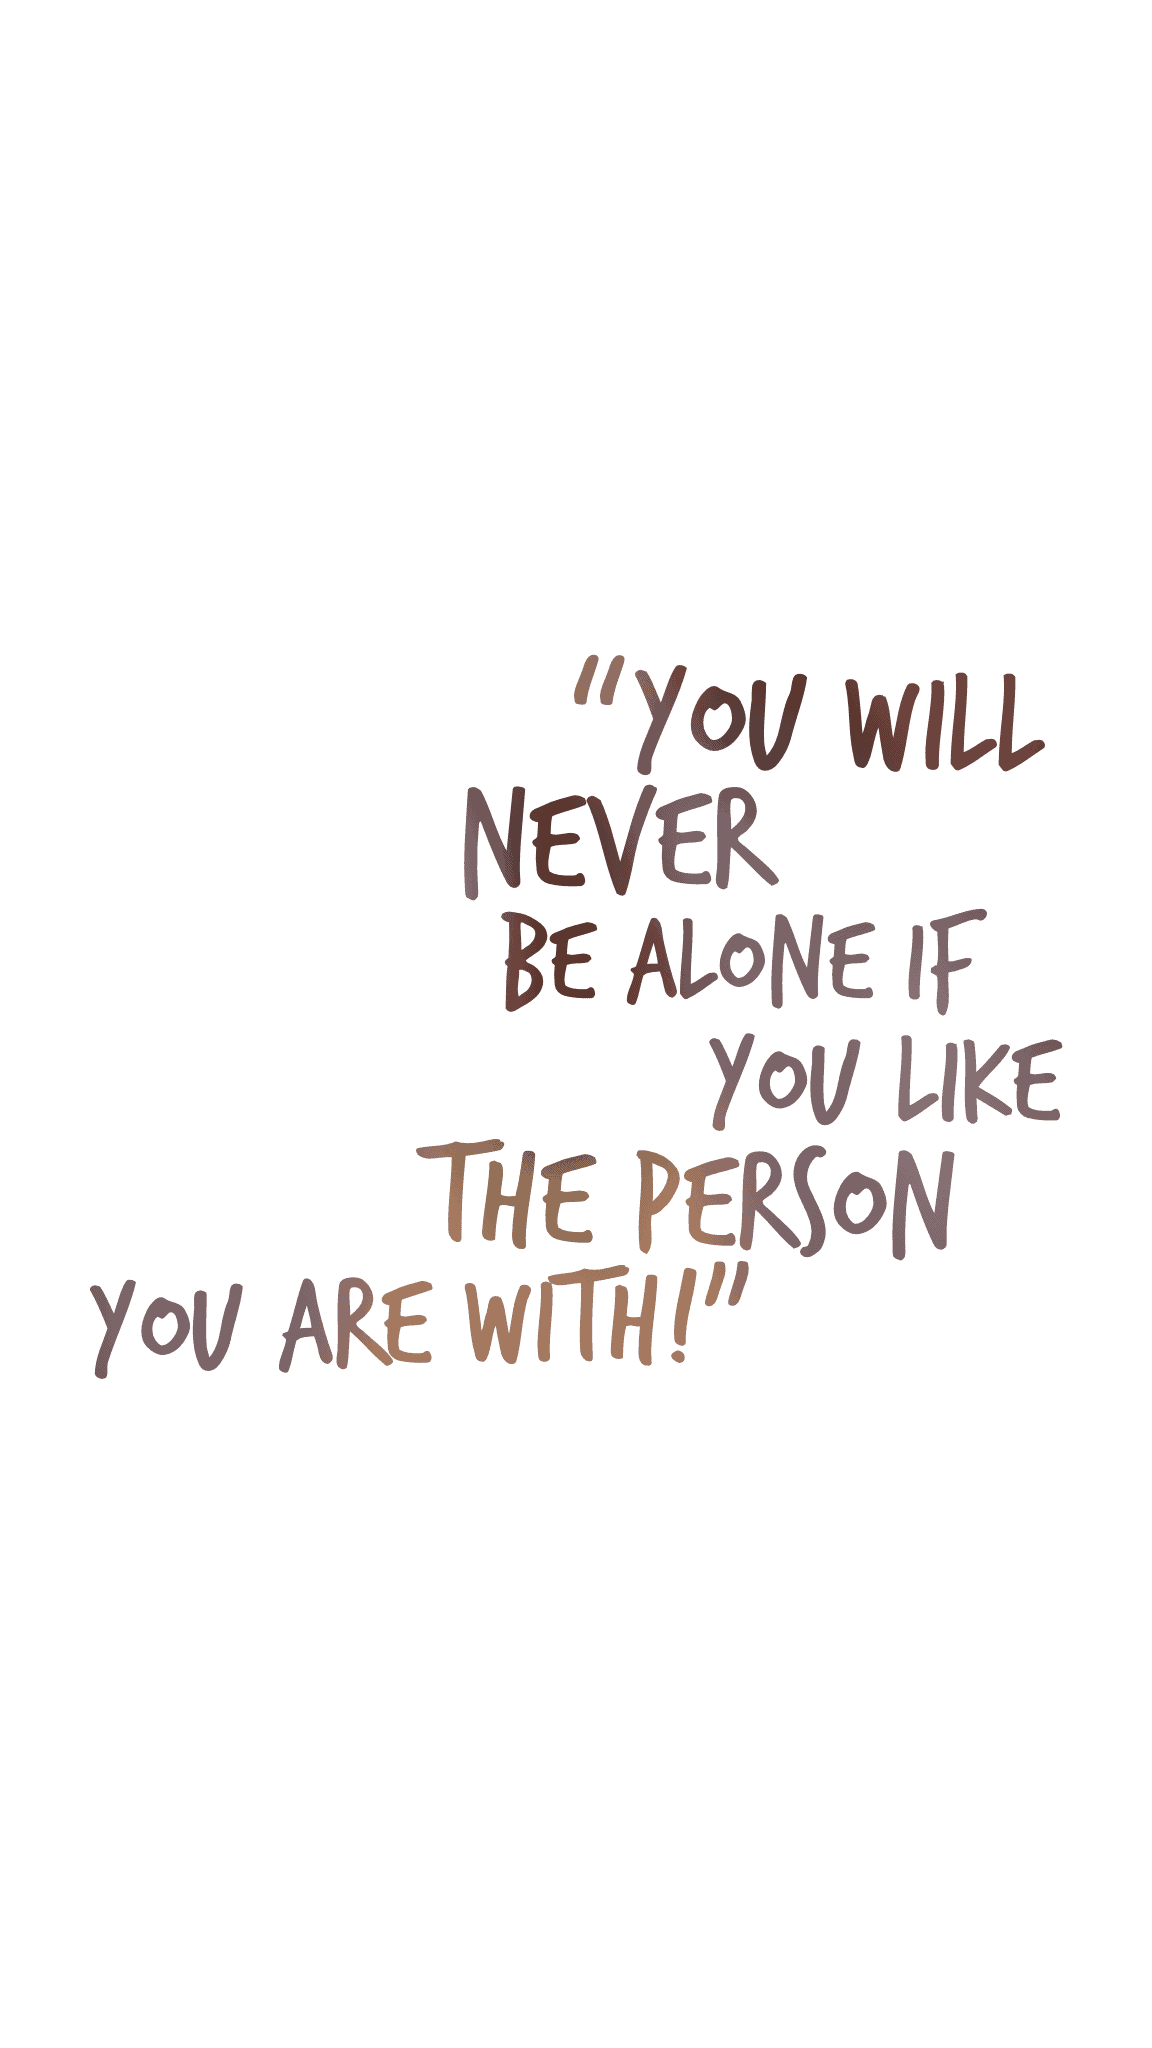 Solo travel quote - you will never be alone